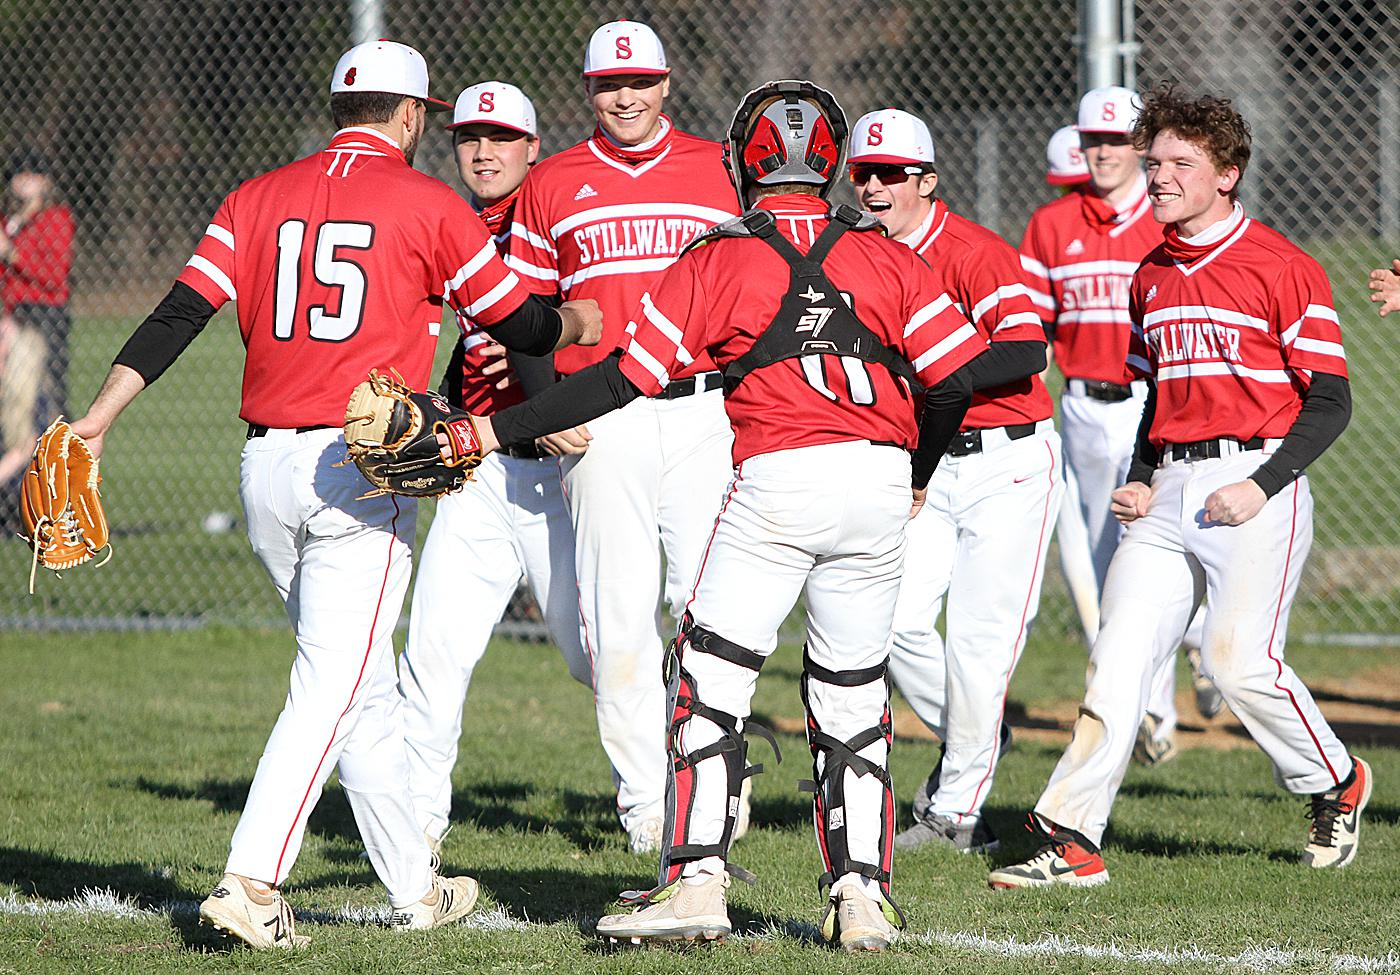 Teammates mob pitcher Stillwater pitcher Gavin Zurn following the Ponies' 1-0 defeat of Mounds View Wednesday in a Suburban East Conference matchup. Photo by Drew Herron, SportsEngine